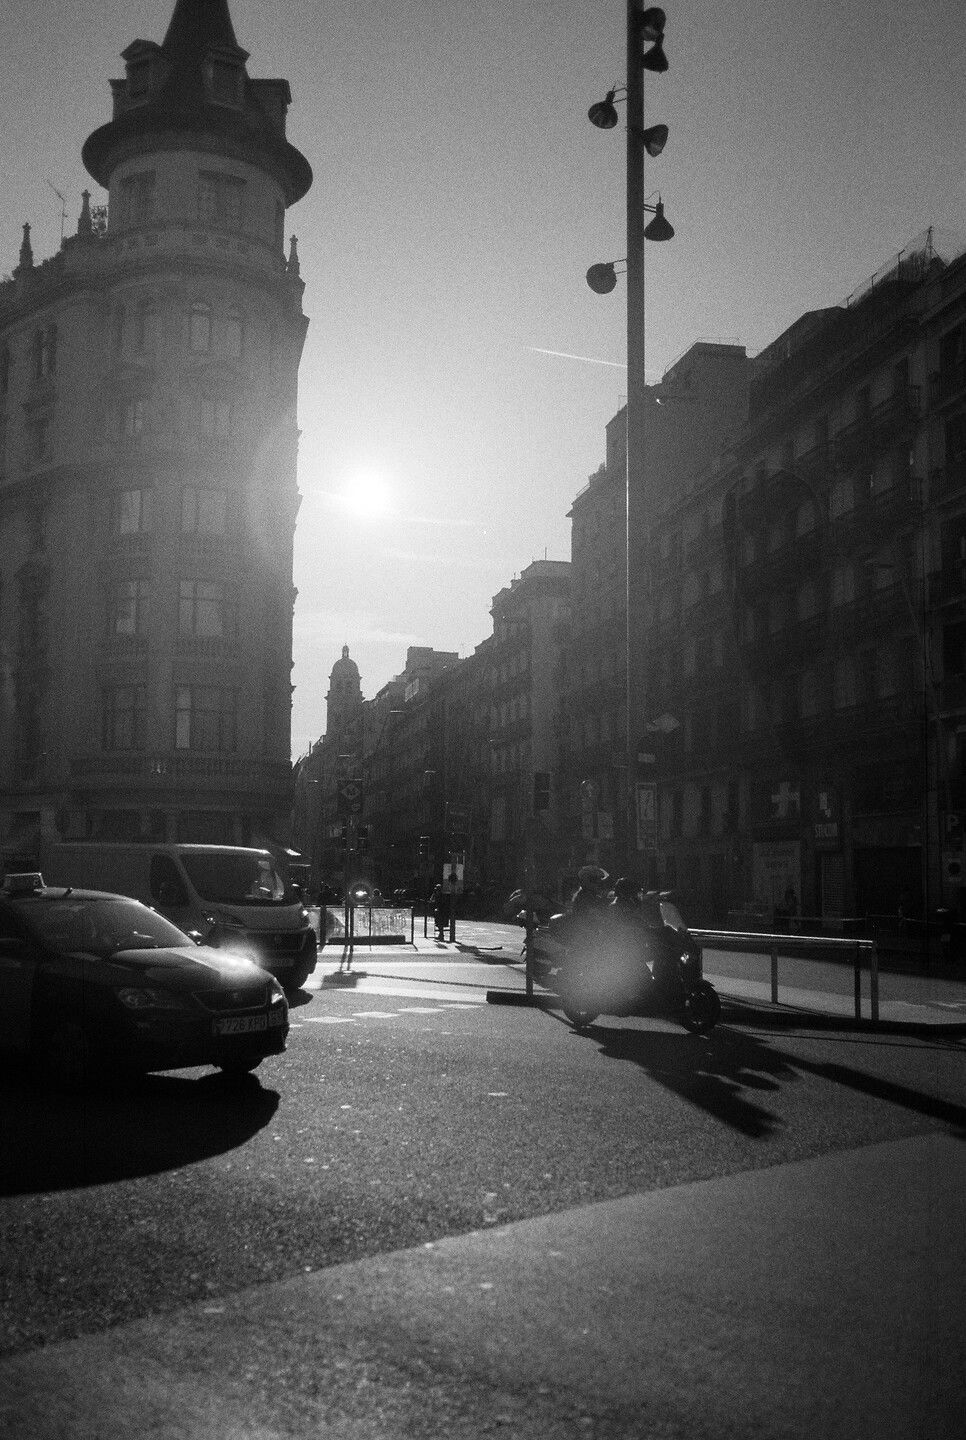 Sep 22, 2019 - Barcelona in Black and White: 10